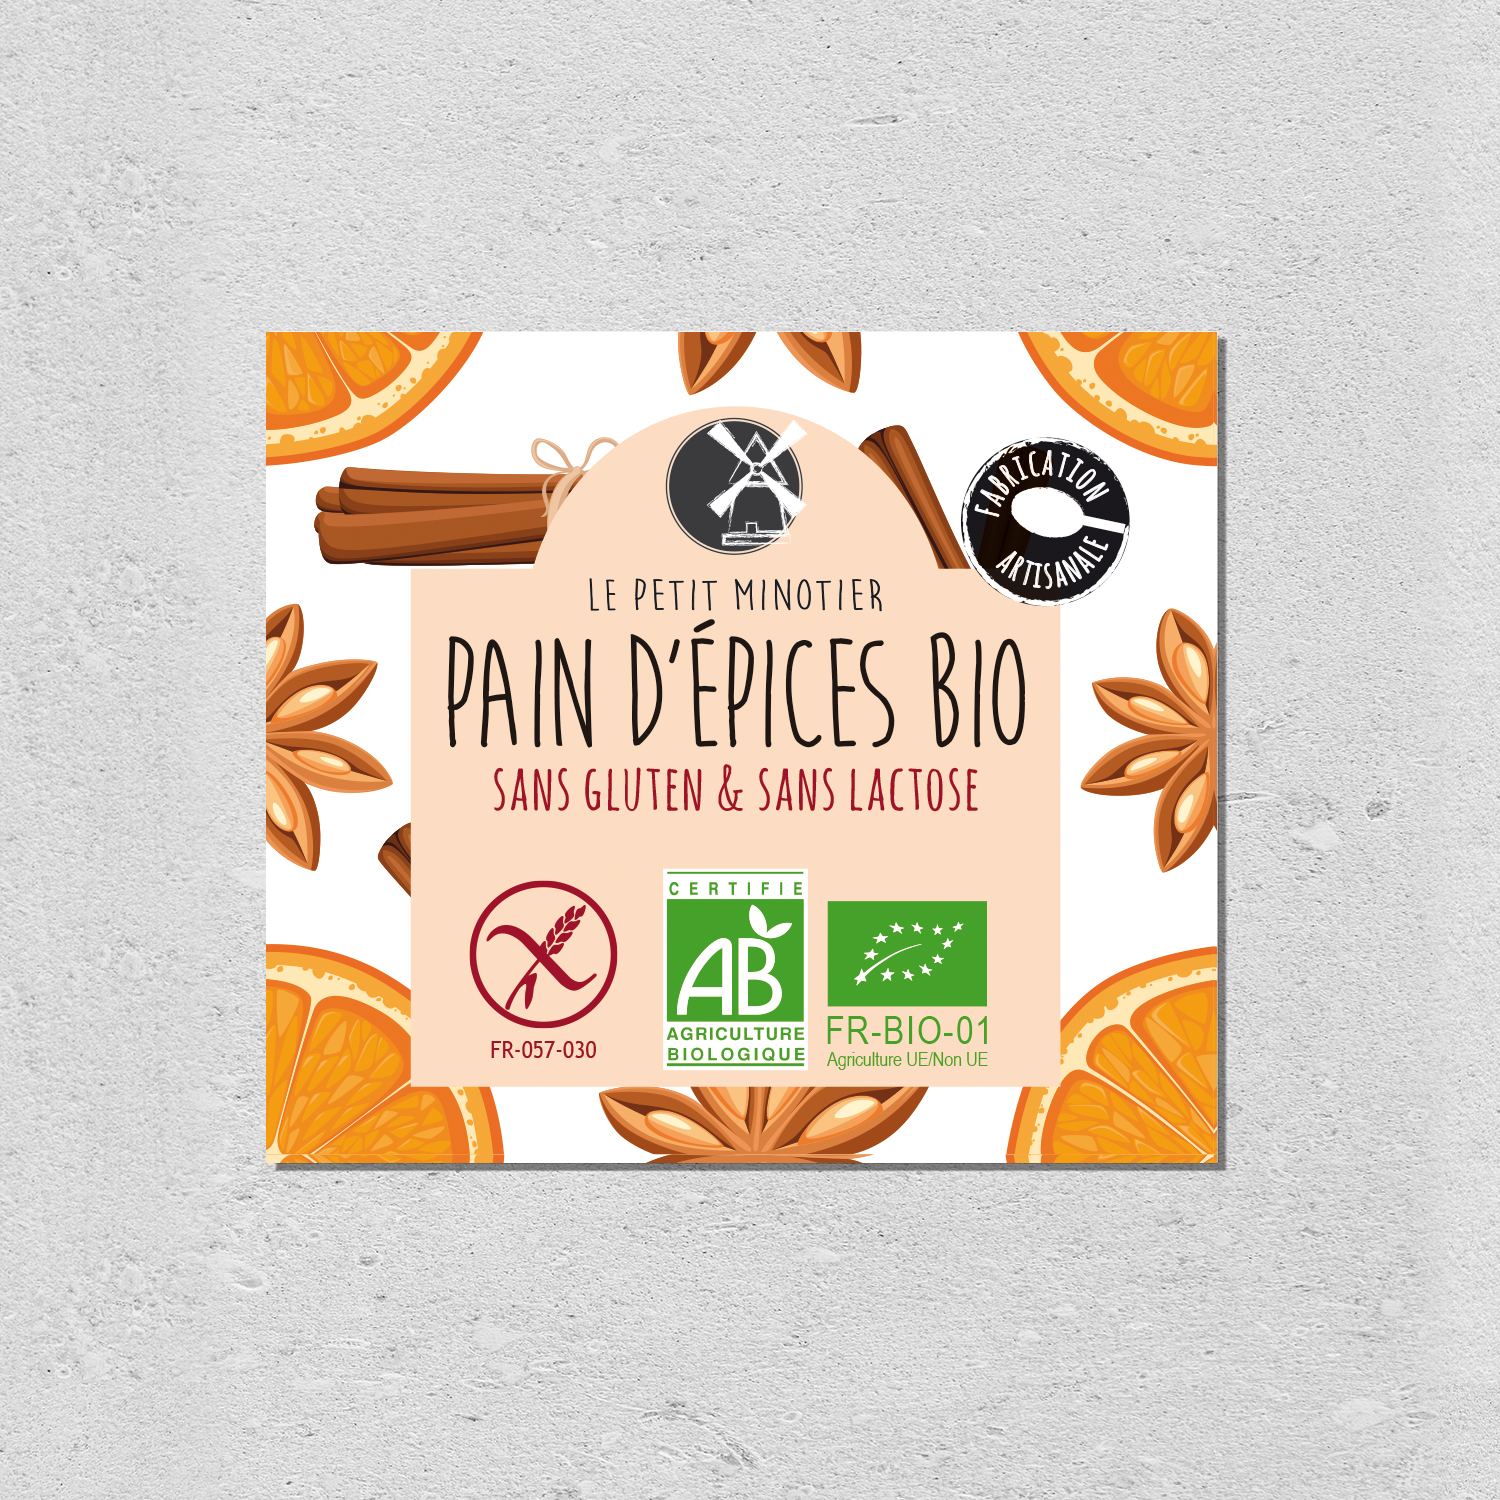 design packaging pain d'épices bio le petit minotier